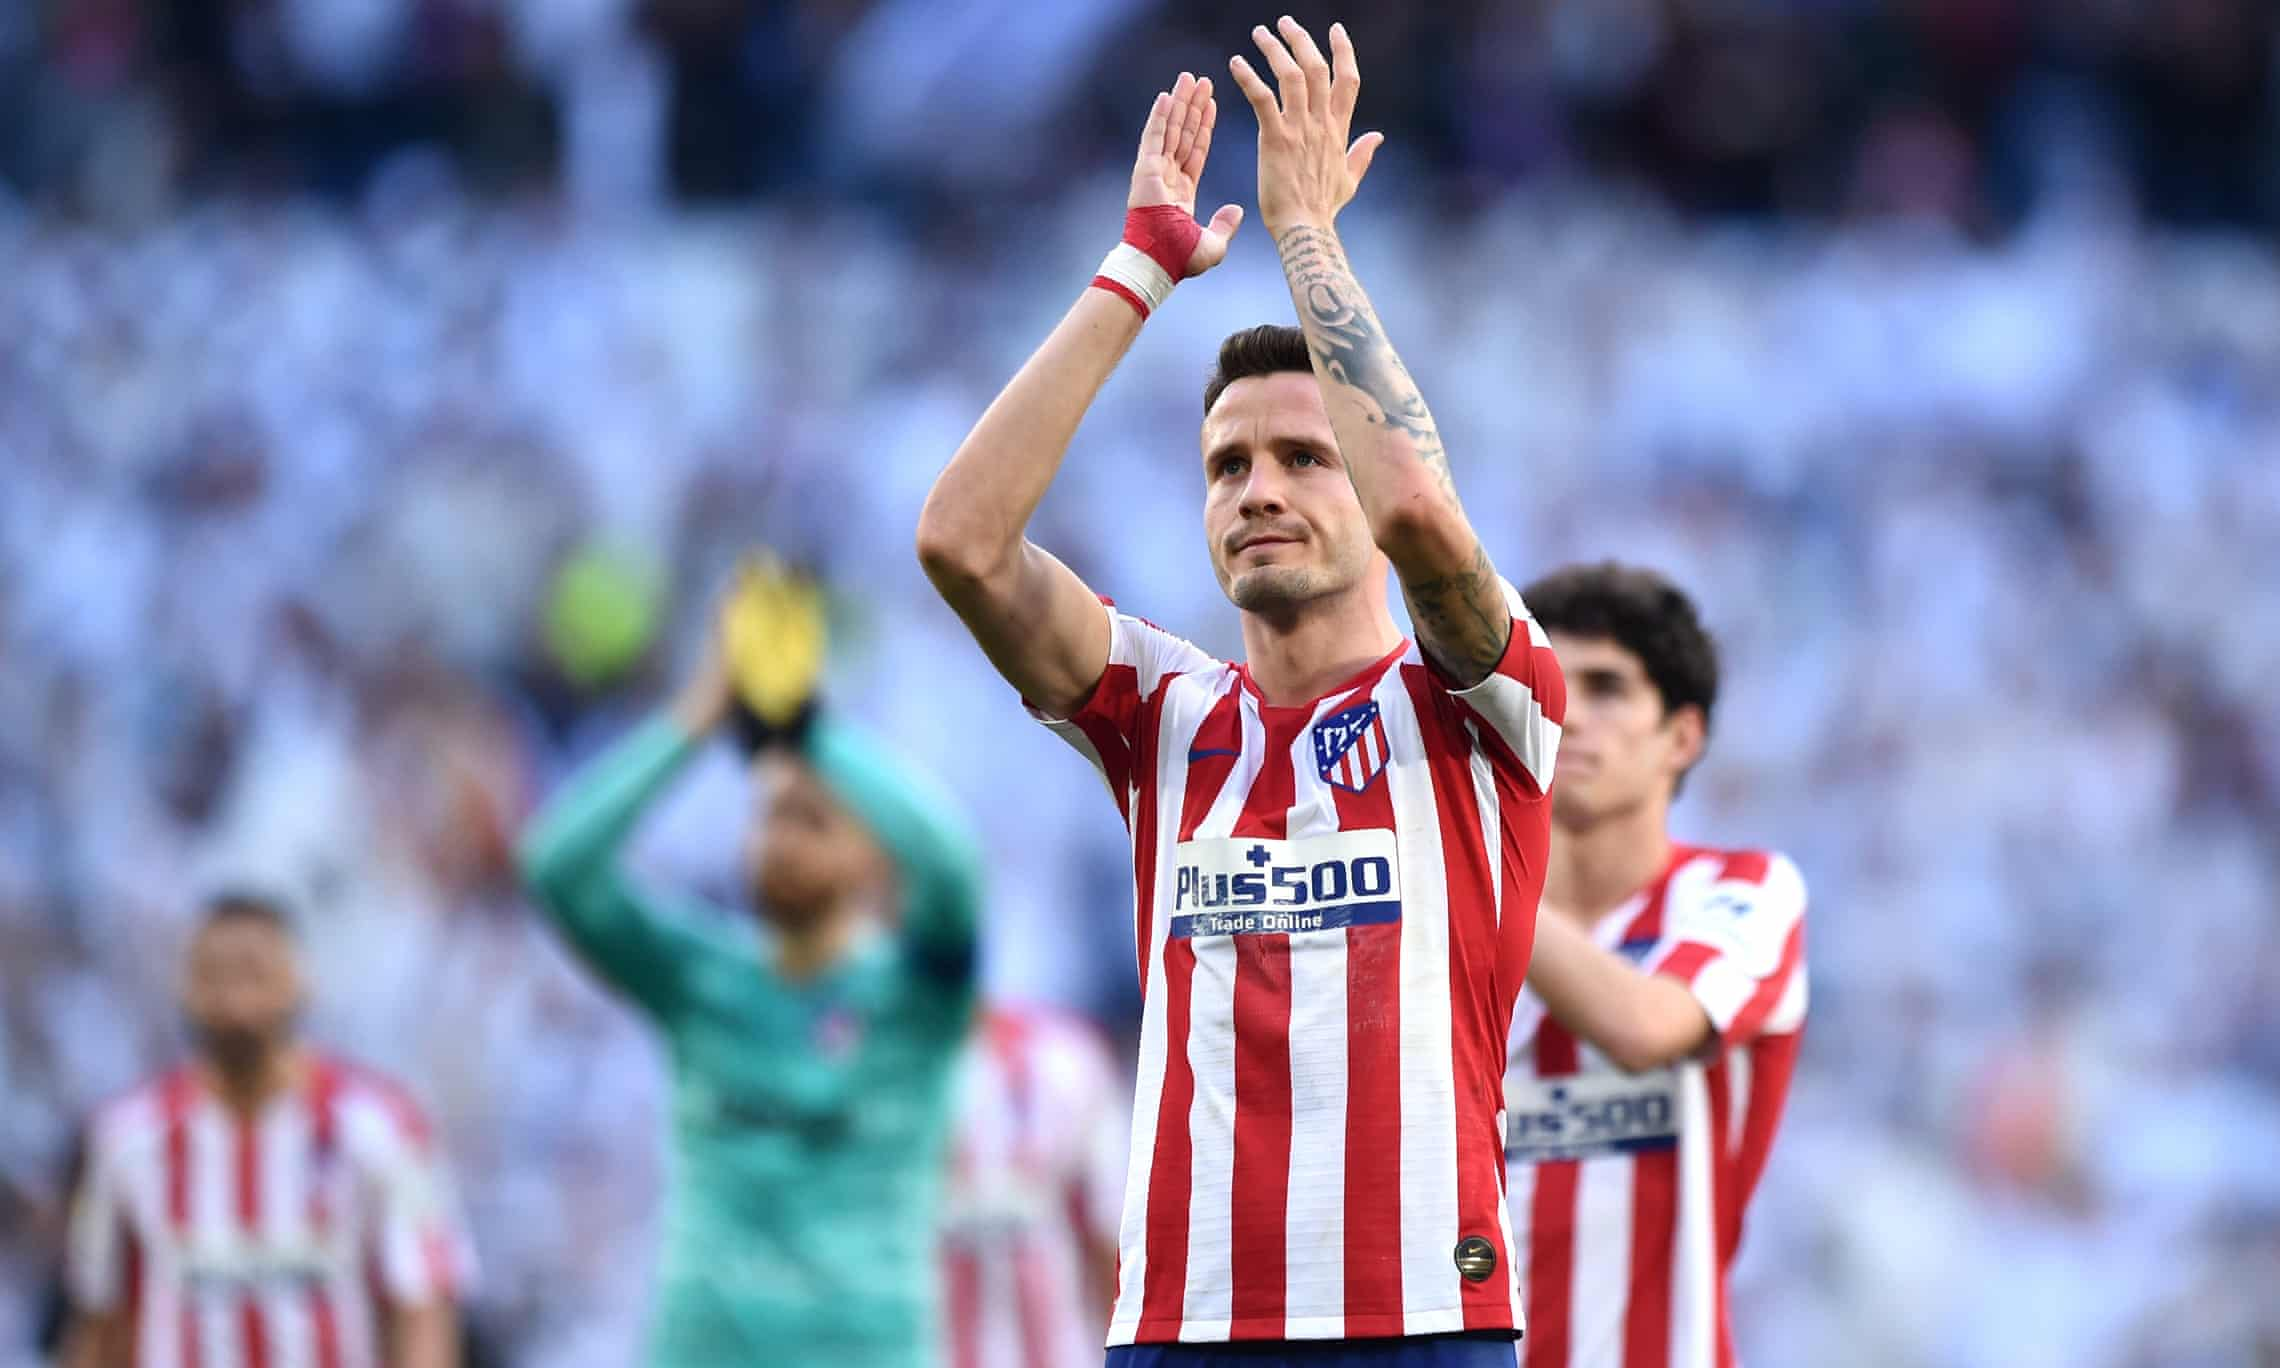 Atlético's Saúl Níguez: 'We know how we can hurt Liverpool' - Bóng Đá